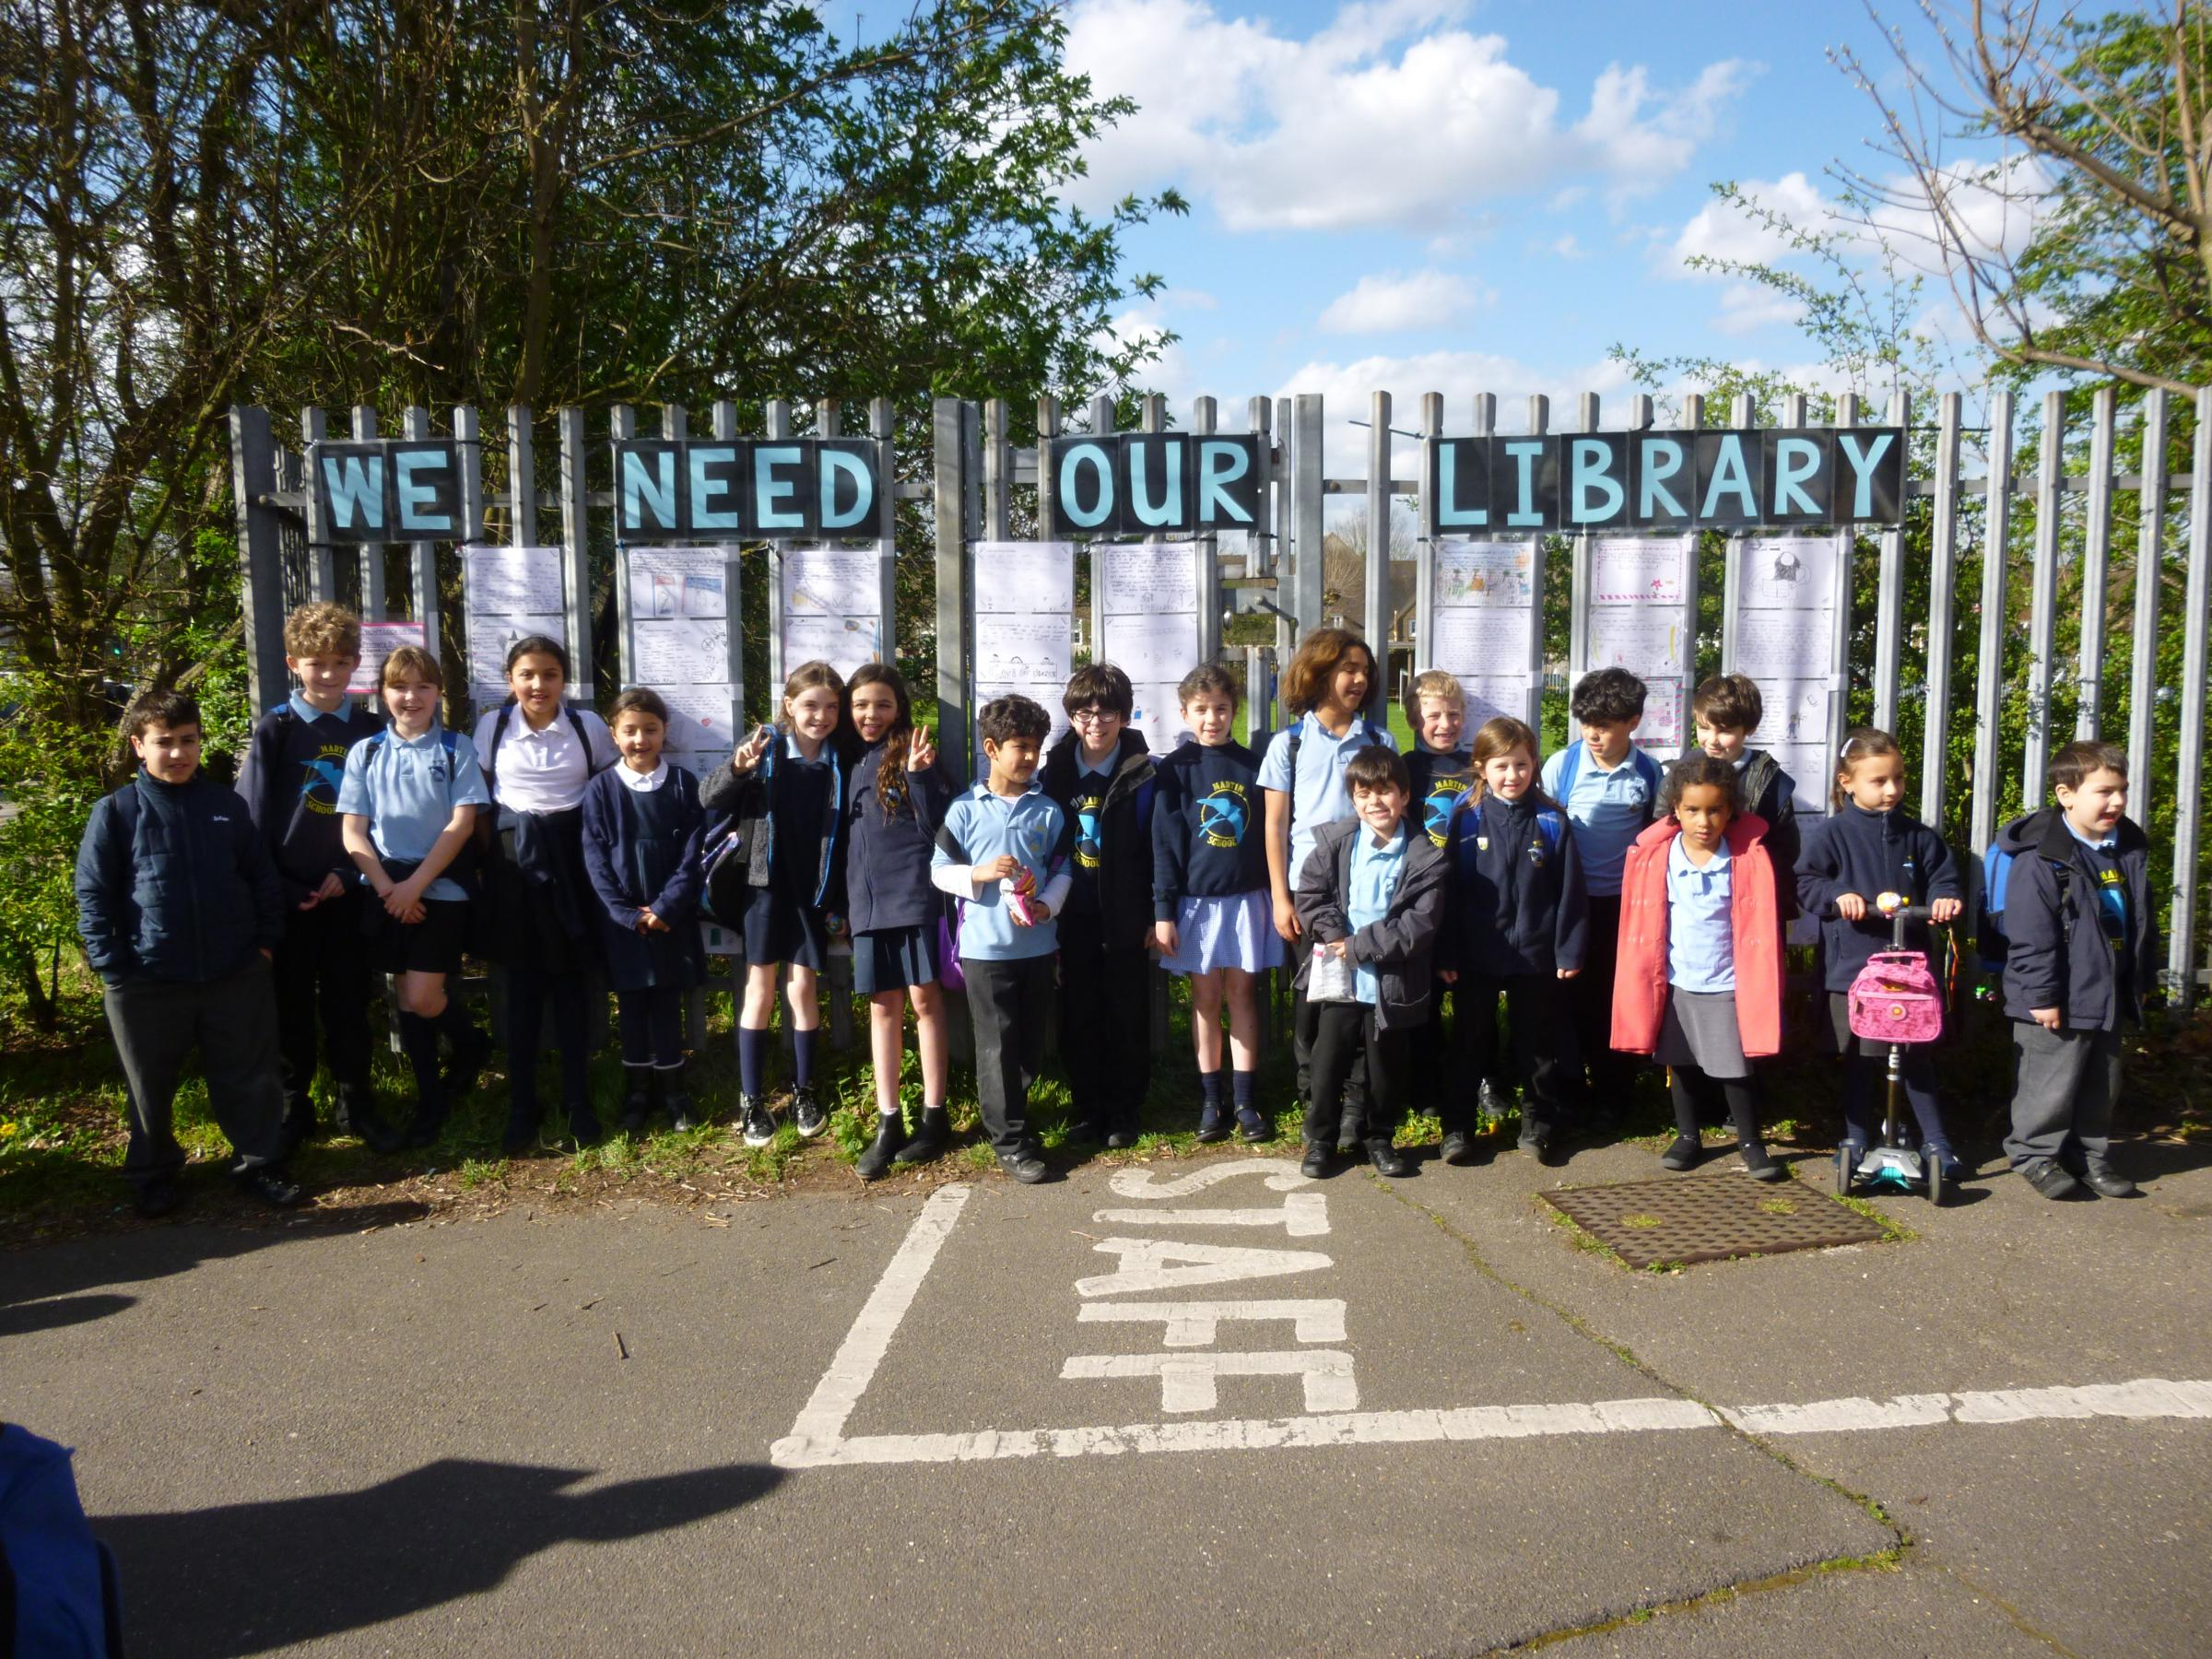 Children protest against library cuts